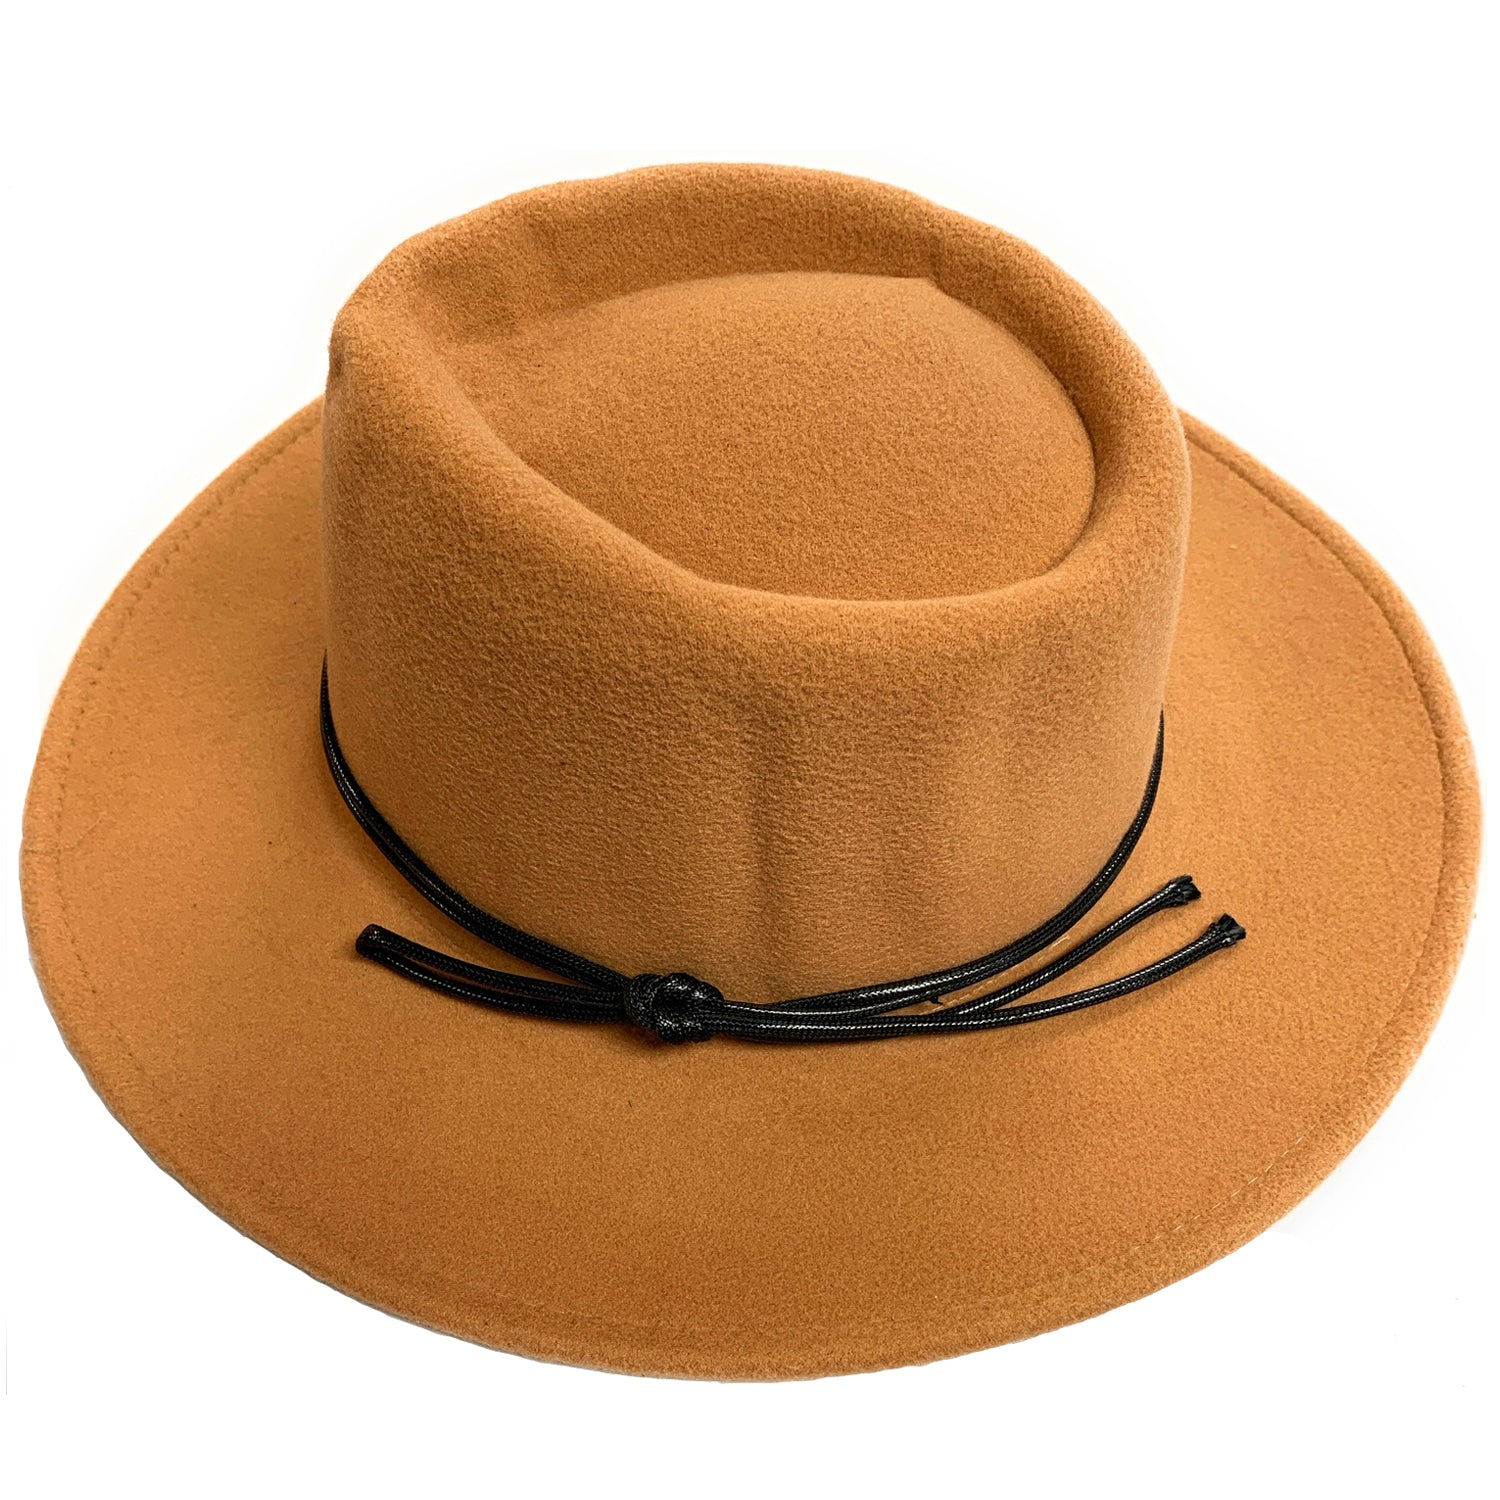 Mechaly Women's Jay Beige Homburg Vegan Hat